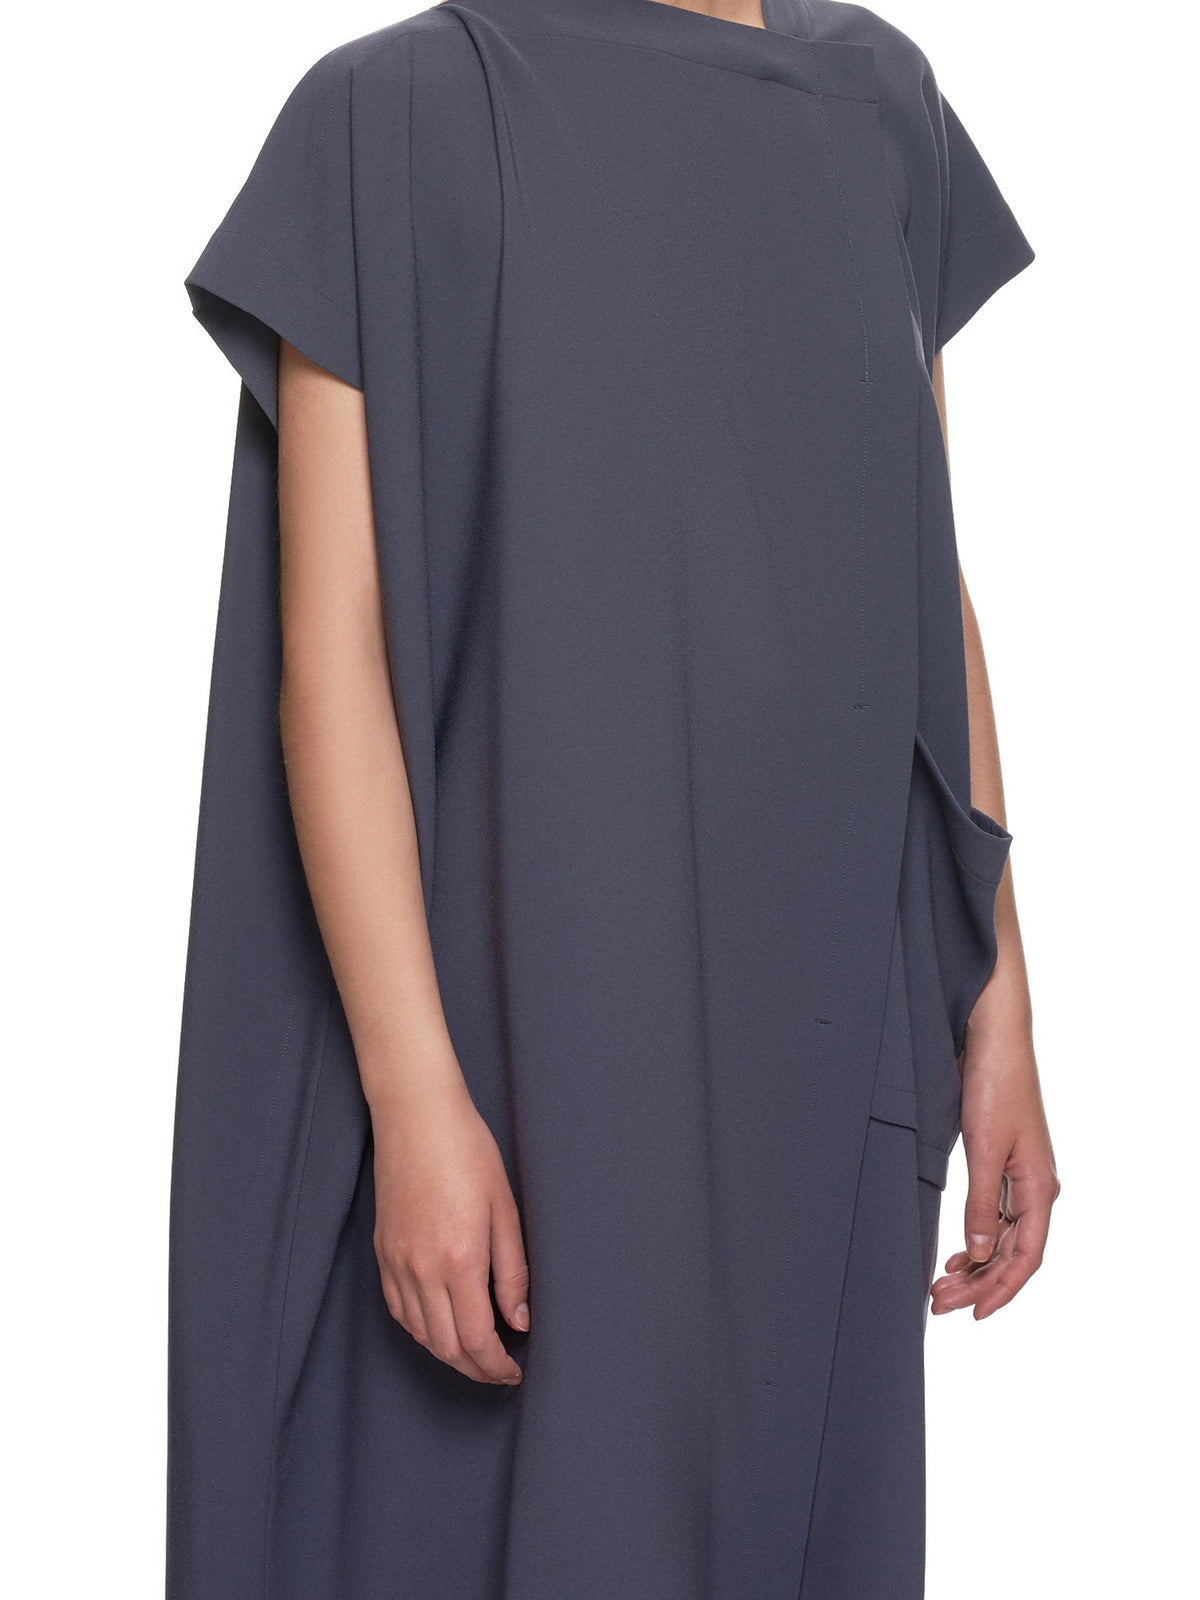 Satin Back Drape Dress (IL96FH337-CHARCOAL-GRAY)